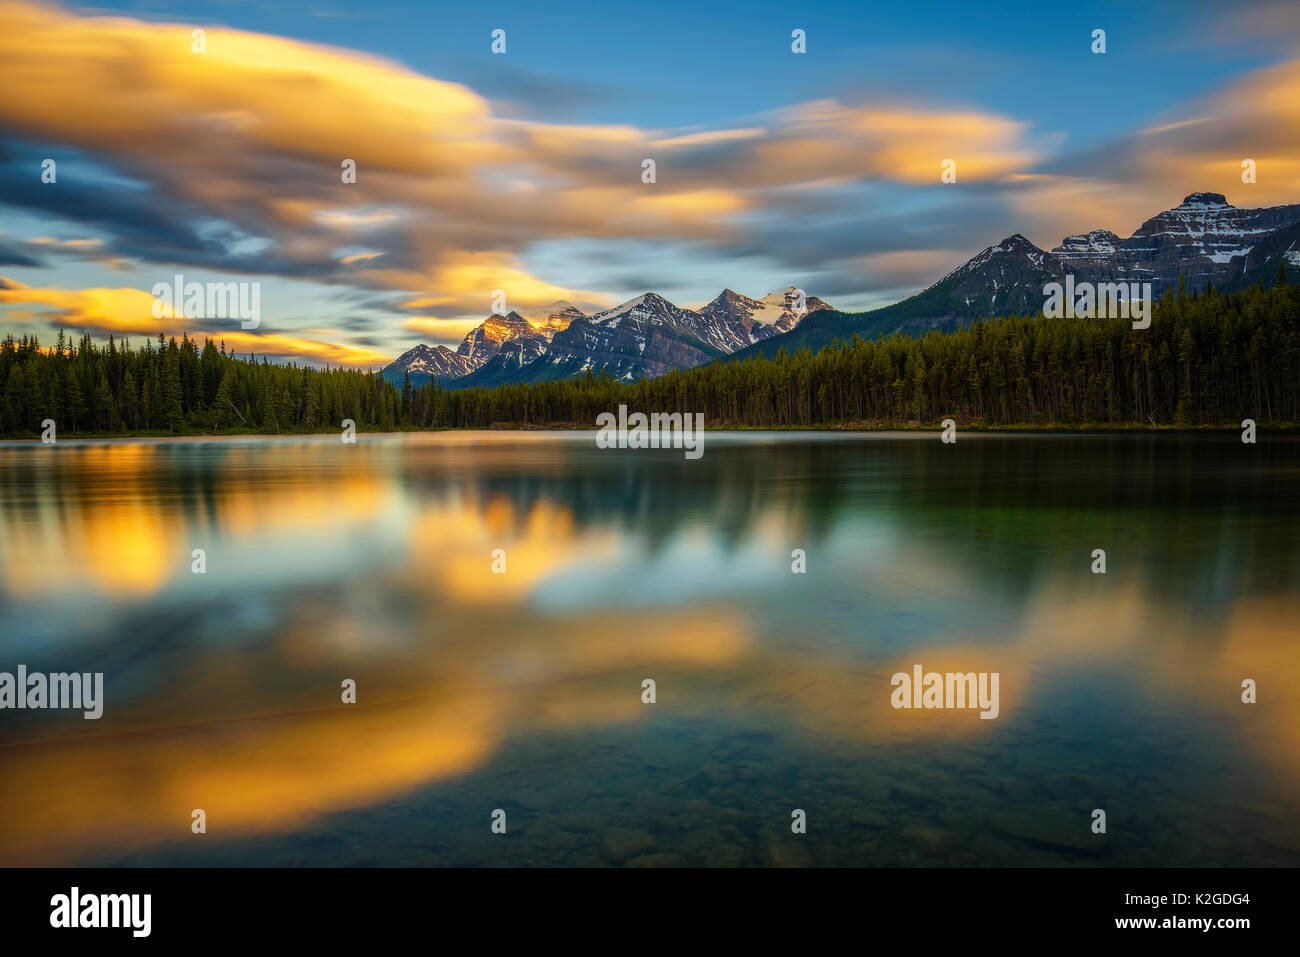 Scenic sunset over Herbert Lake along the roadside of the Icefields Parkway in Banff National Park, Alberta, Canada. Long exposure. - Stock Image